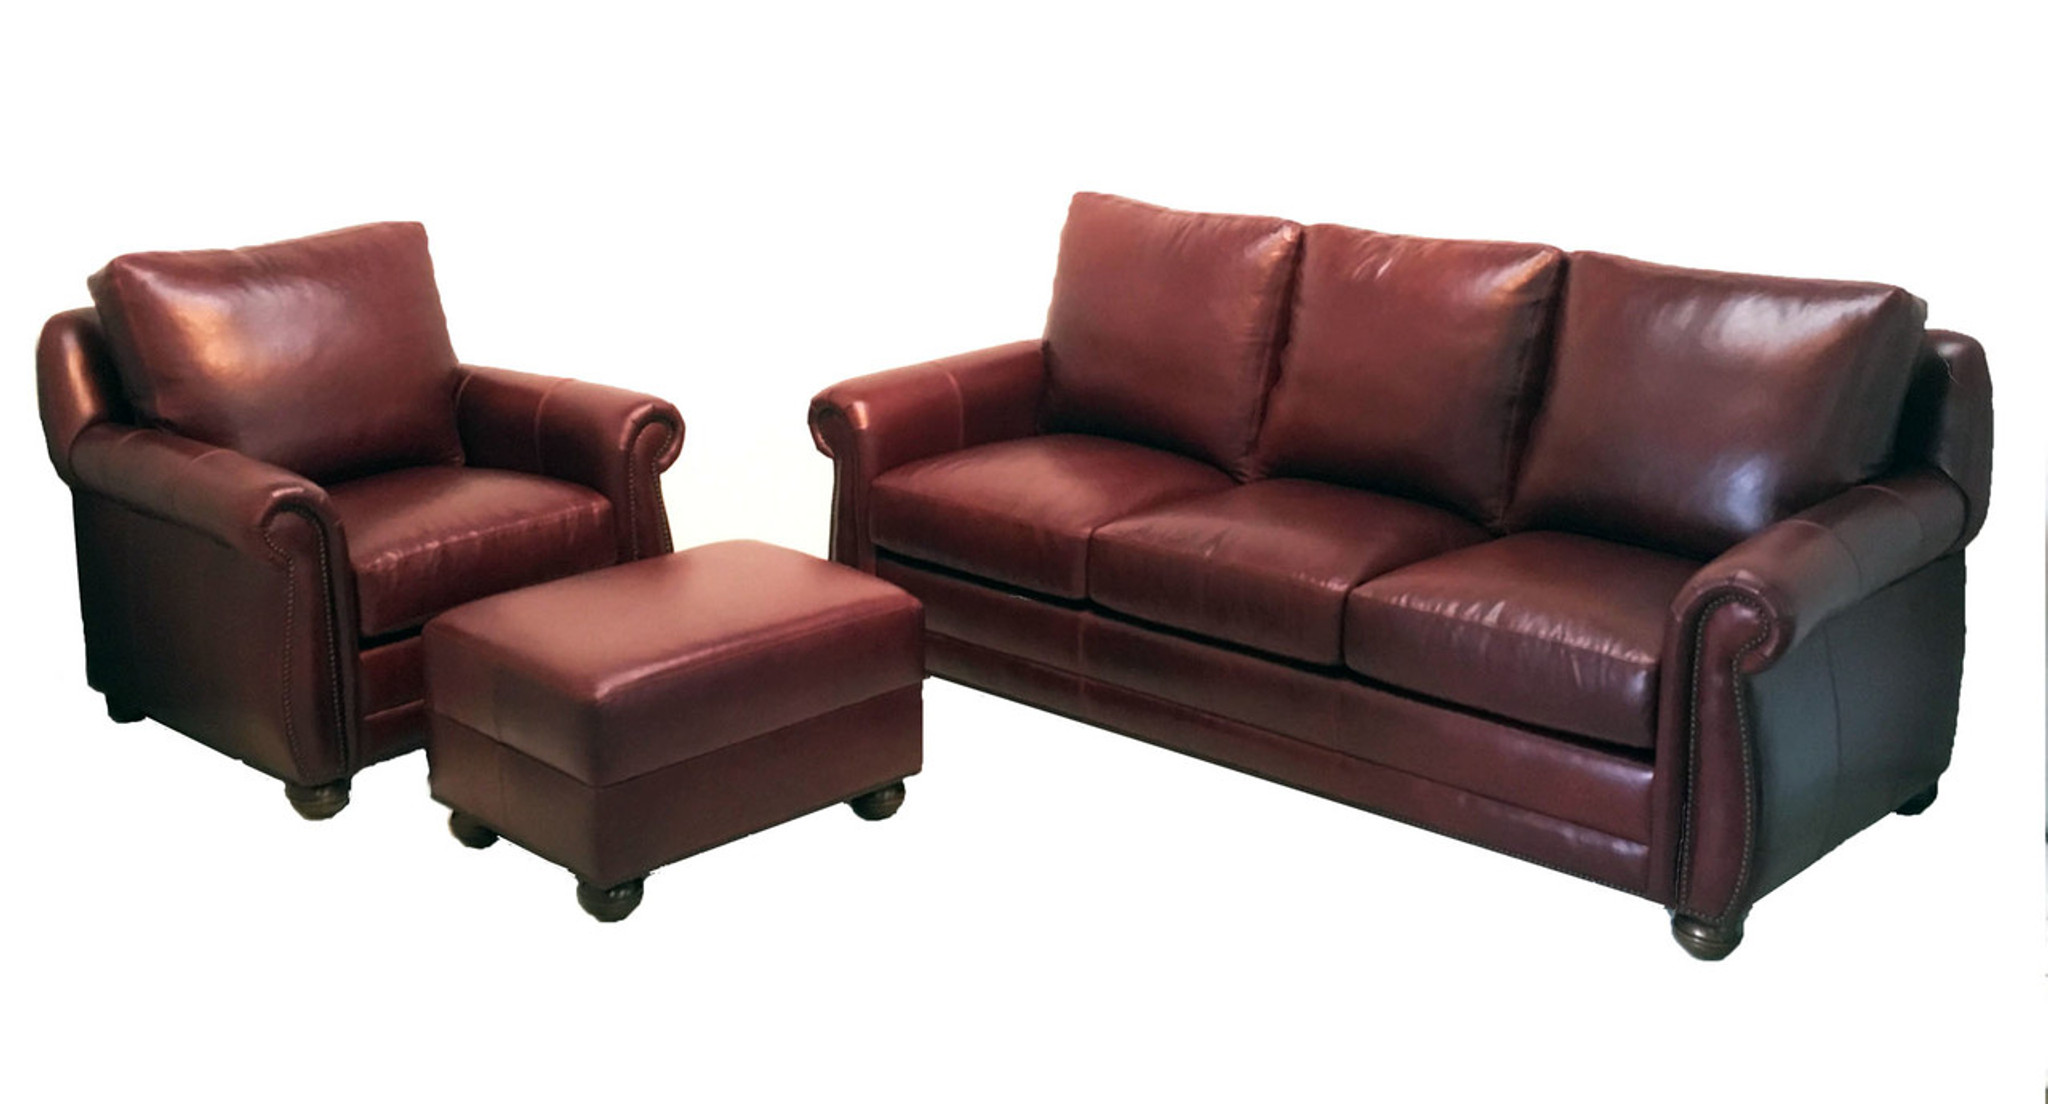 Palmer Leather Sofa, American Heritage Custom Leather-Made in the USA